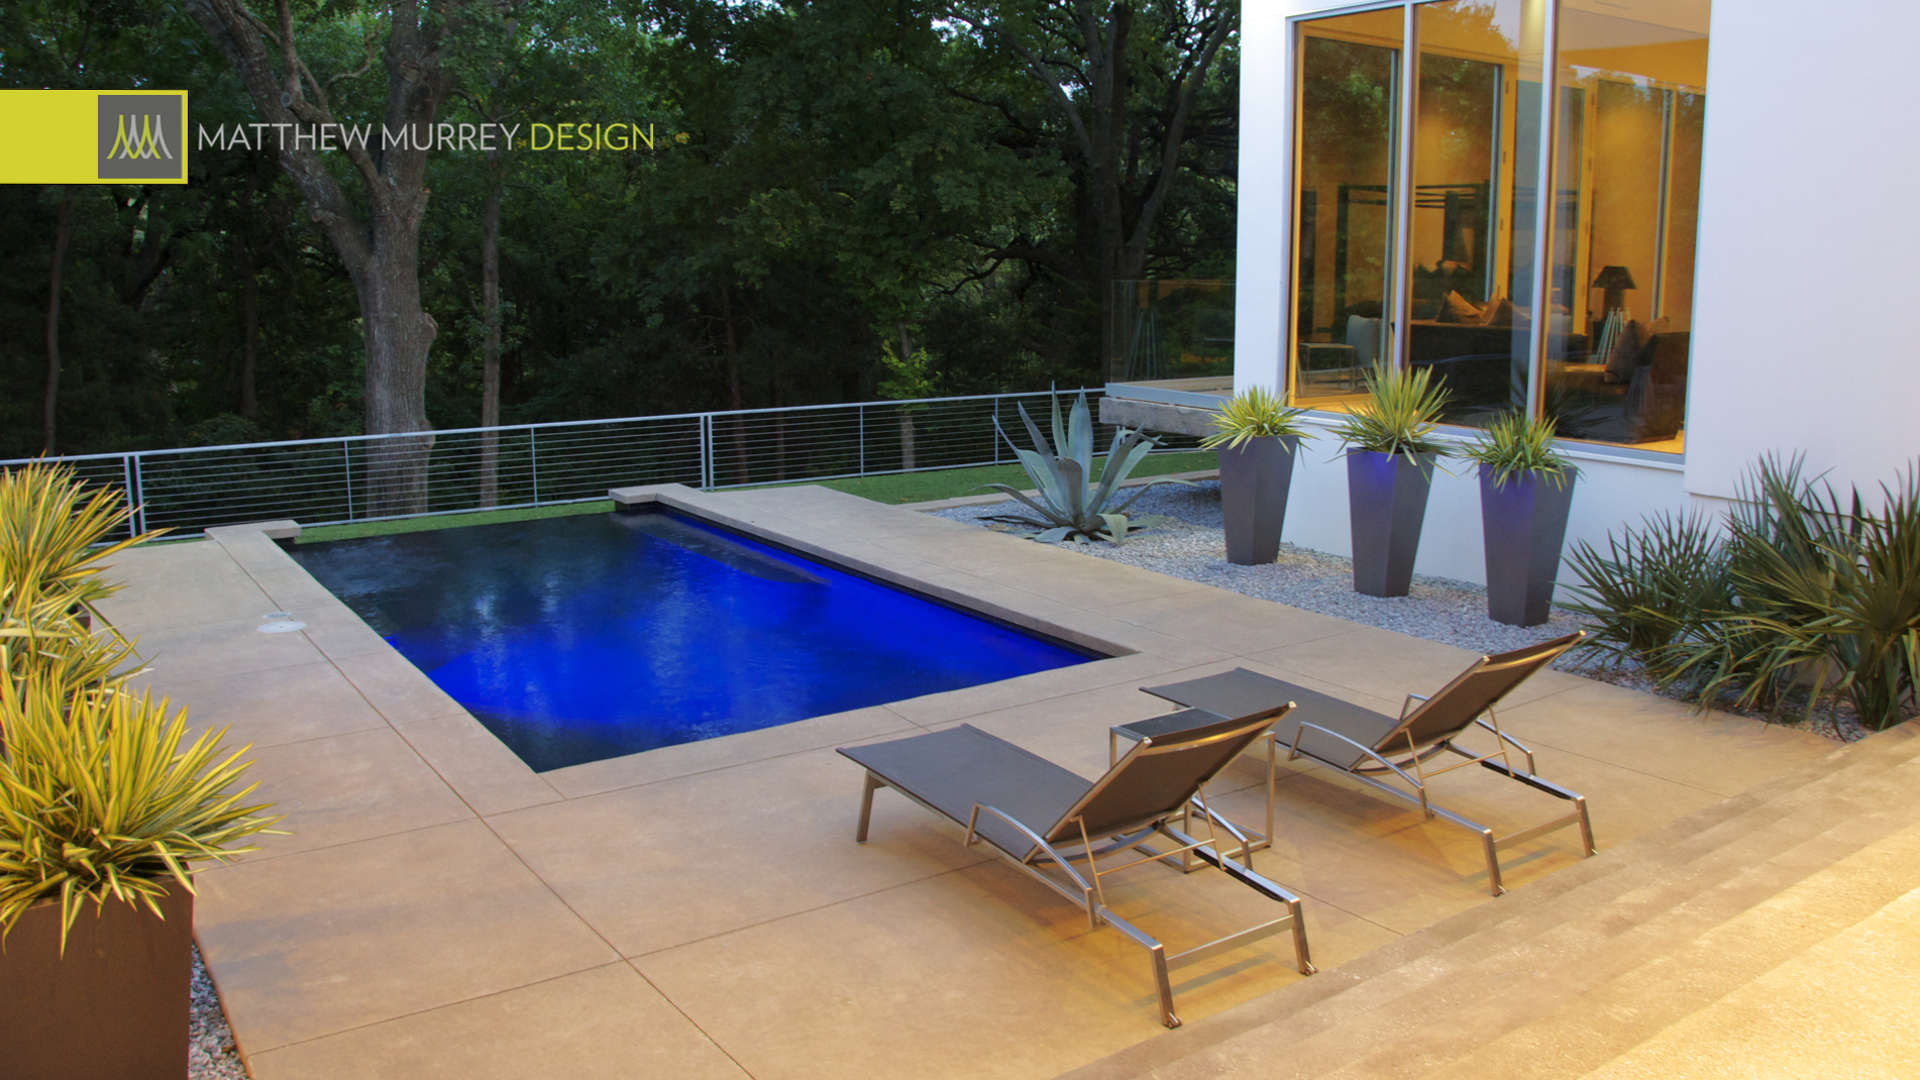 Dallas landscape design firm matthew murrey design for Garden design landscaping dallas tx